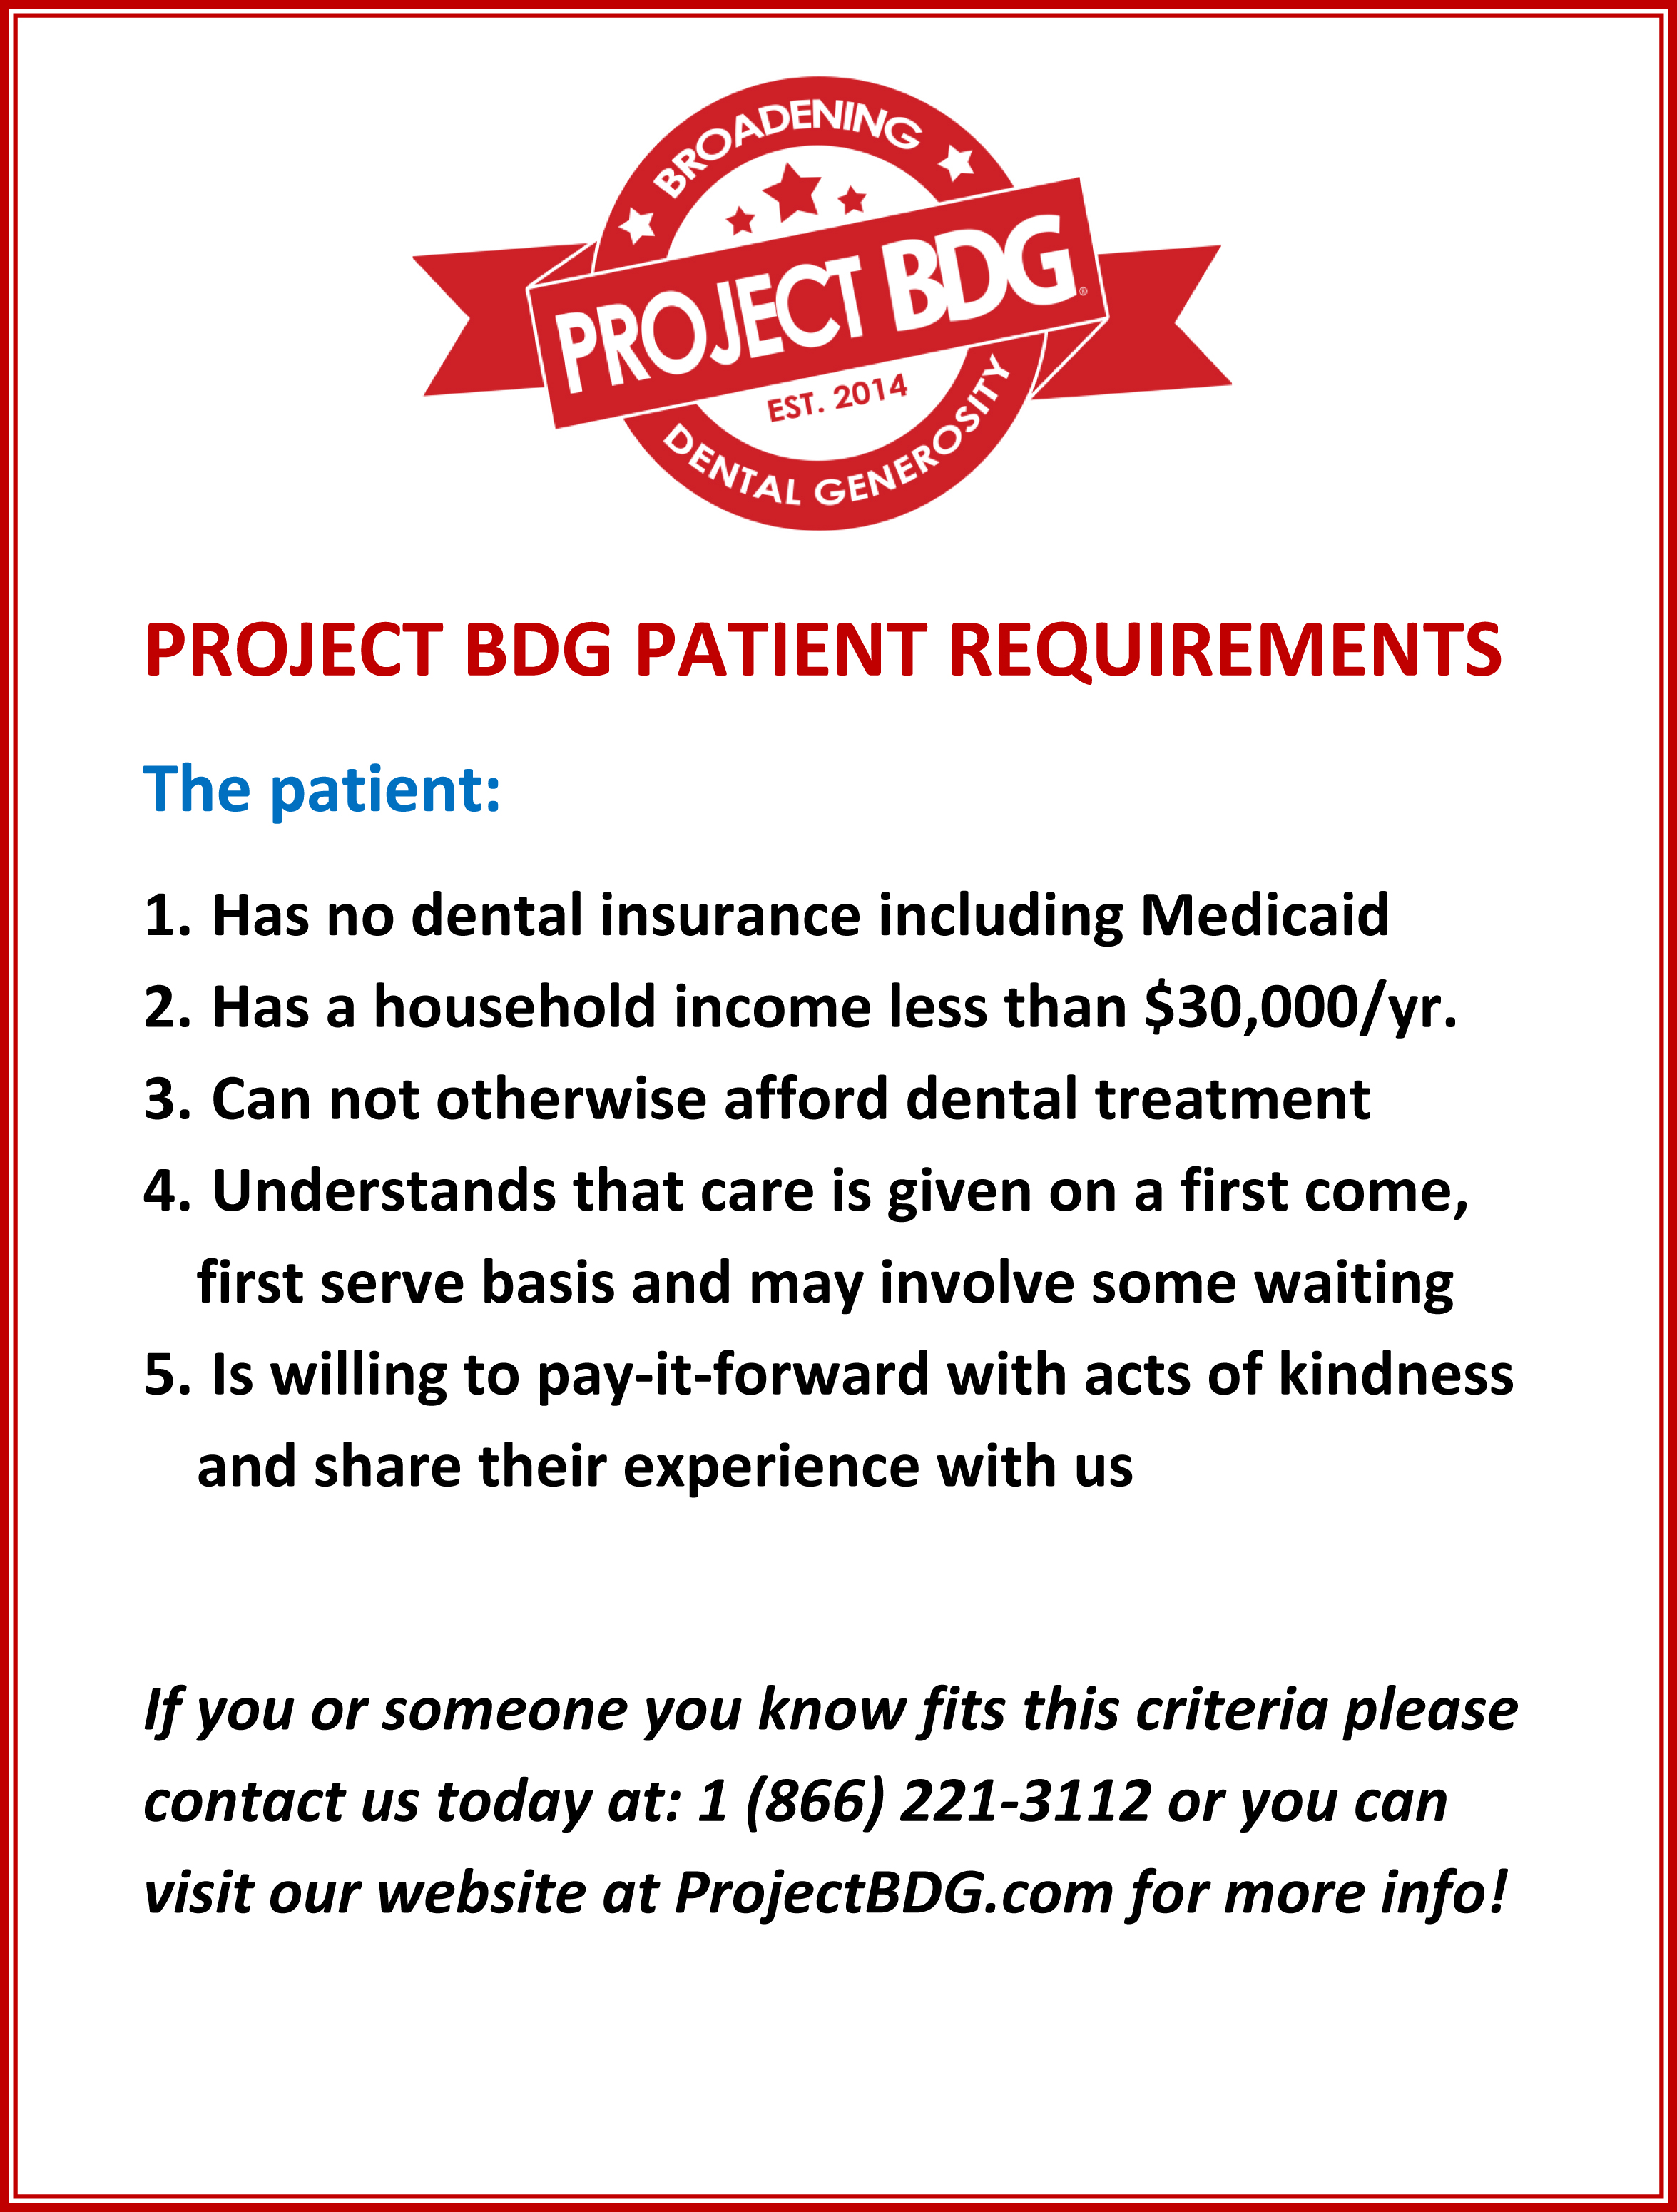 PROJECT BDG PATIENT REQUIREMENTS